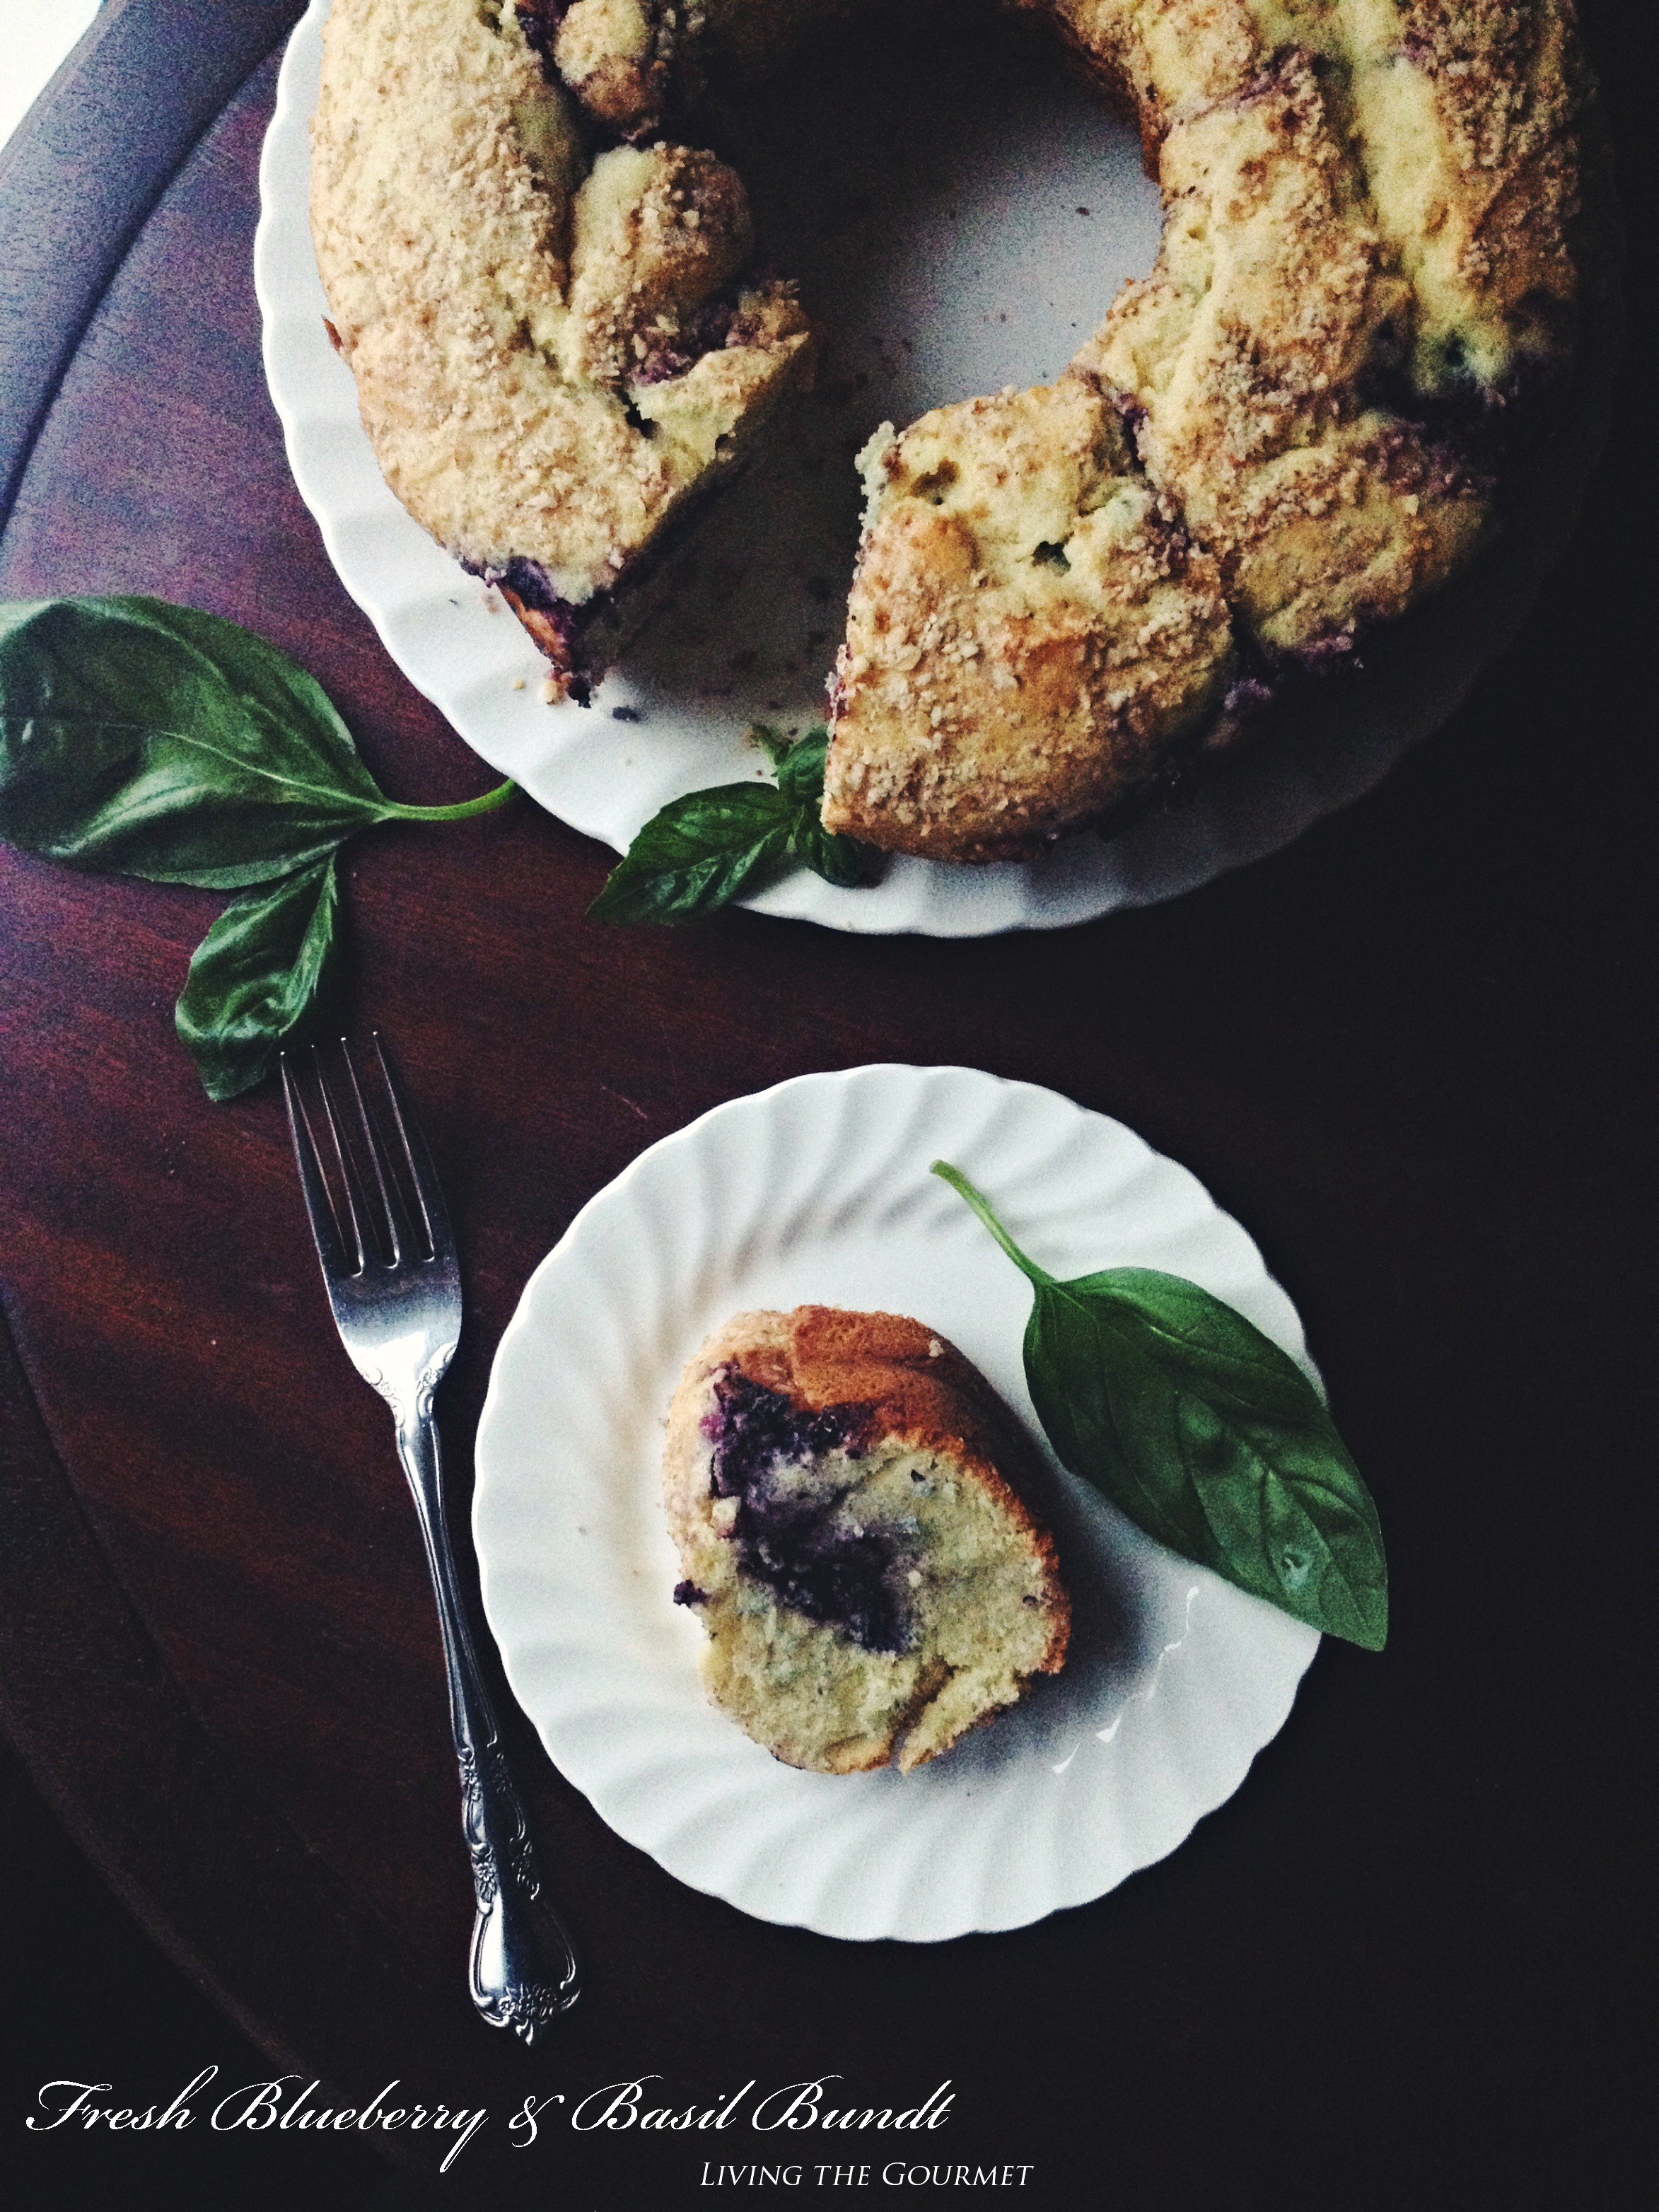 Living the Gourmet: Fresh Blueberry and Basil Bundt